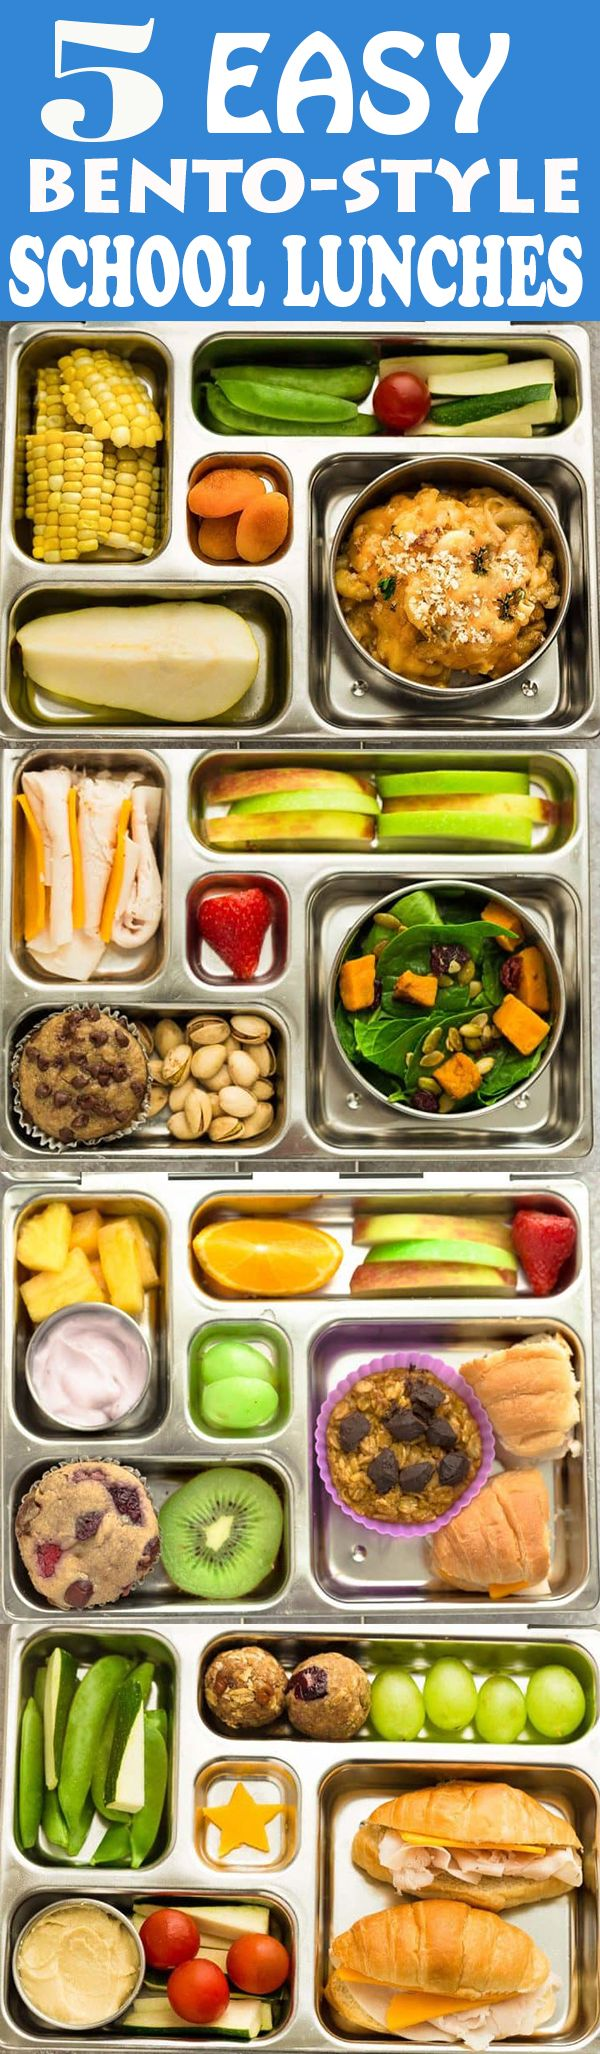 5 Easy, Healthy, Fun and Delicious Bento Box School Lunches for Fall and Autumn. With ideas for apples, pumpkins and sweet potato along with options for nut free, dairy free and gluten free choices in cute bento lunchboxes. There is something for even picky eaters who will want to finish their food with no leftovers. Perfect for adults too who are looking for recipes and ideas other than sandwiches to bring to work in fun lunchboxes.#lunchbox #schoollunches #lunch #bentobox #kidfriendly